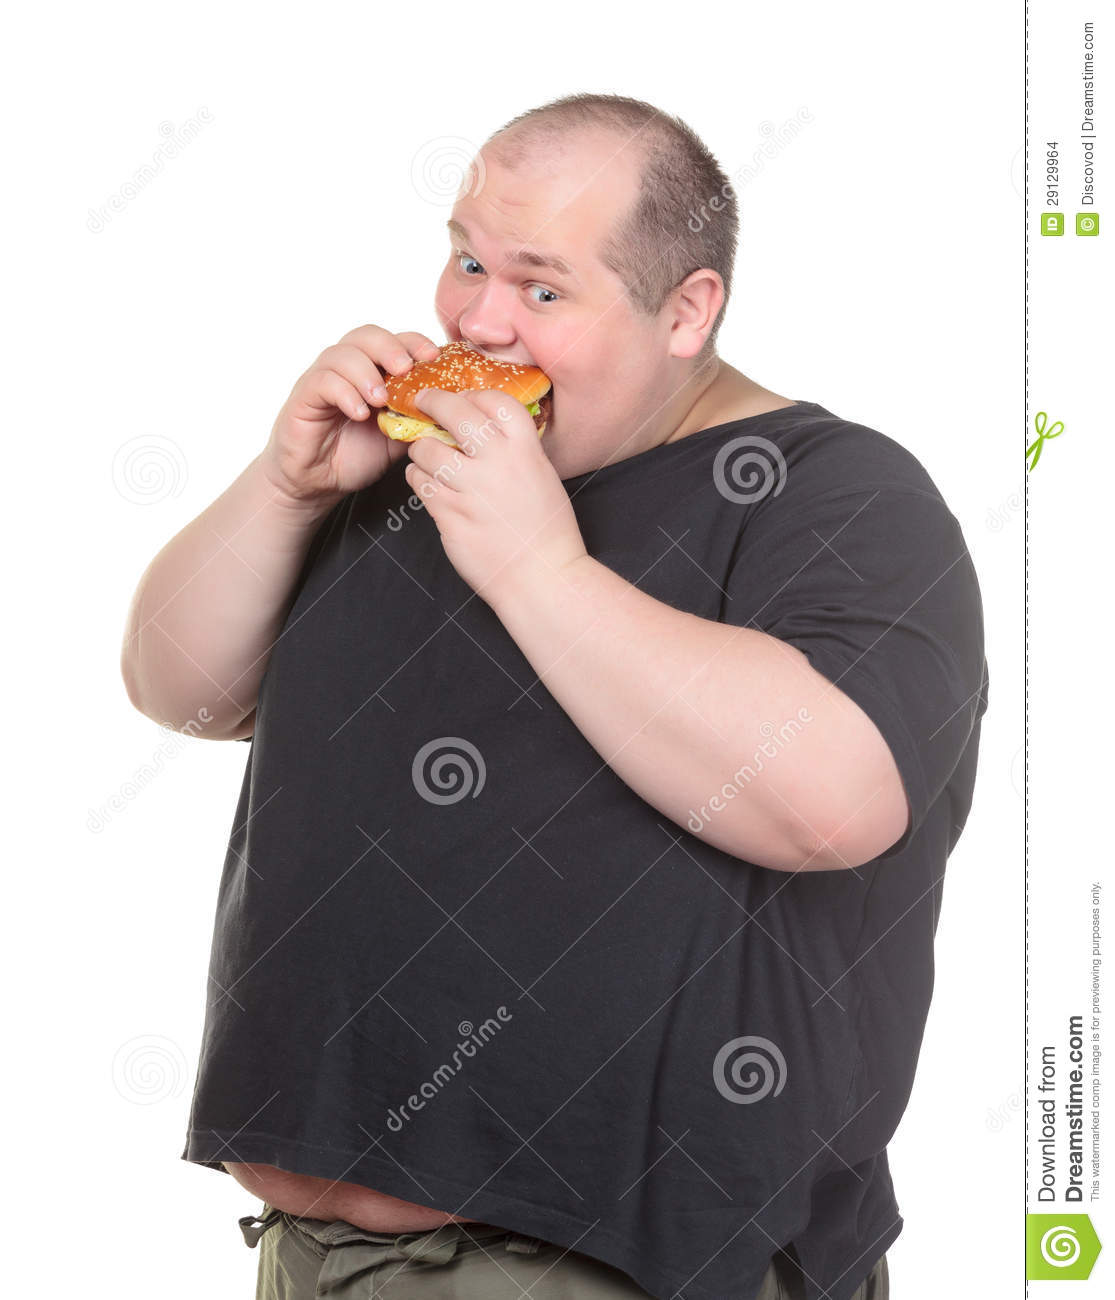 image Pics of fat guy in bondage gear and gay